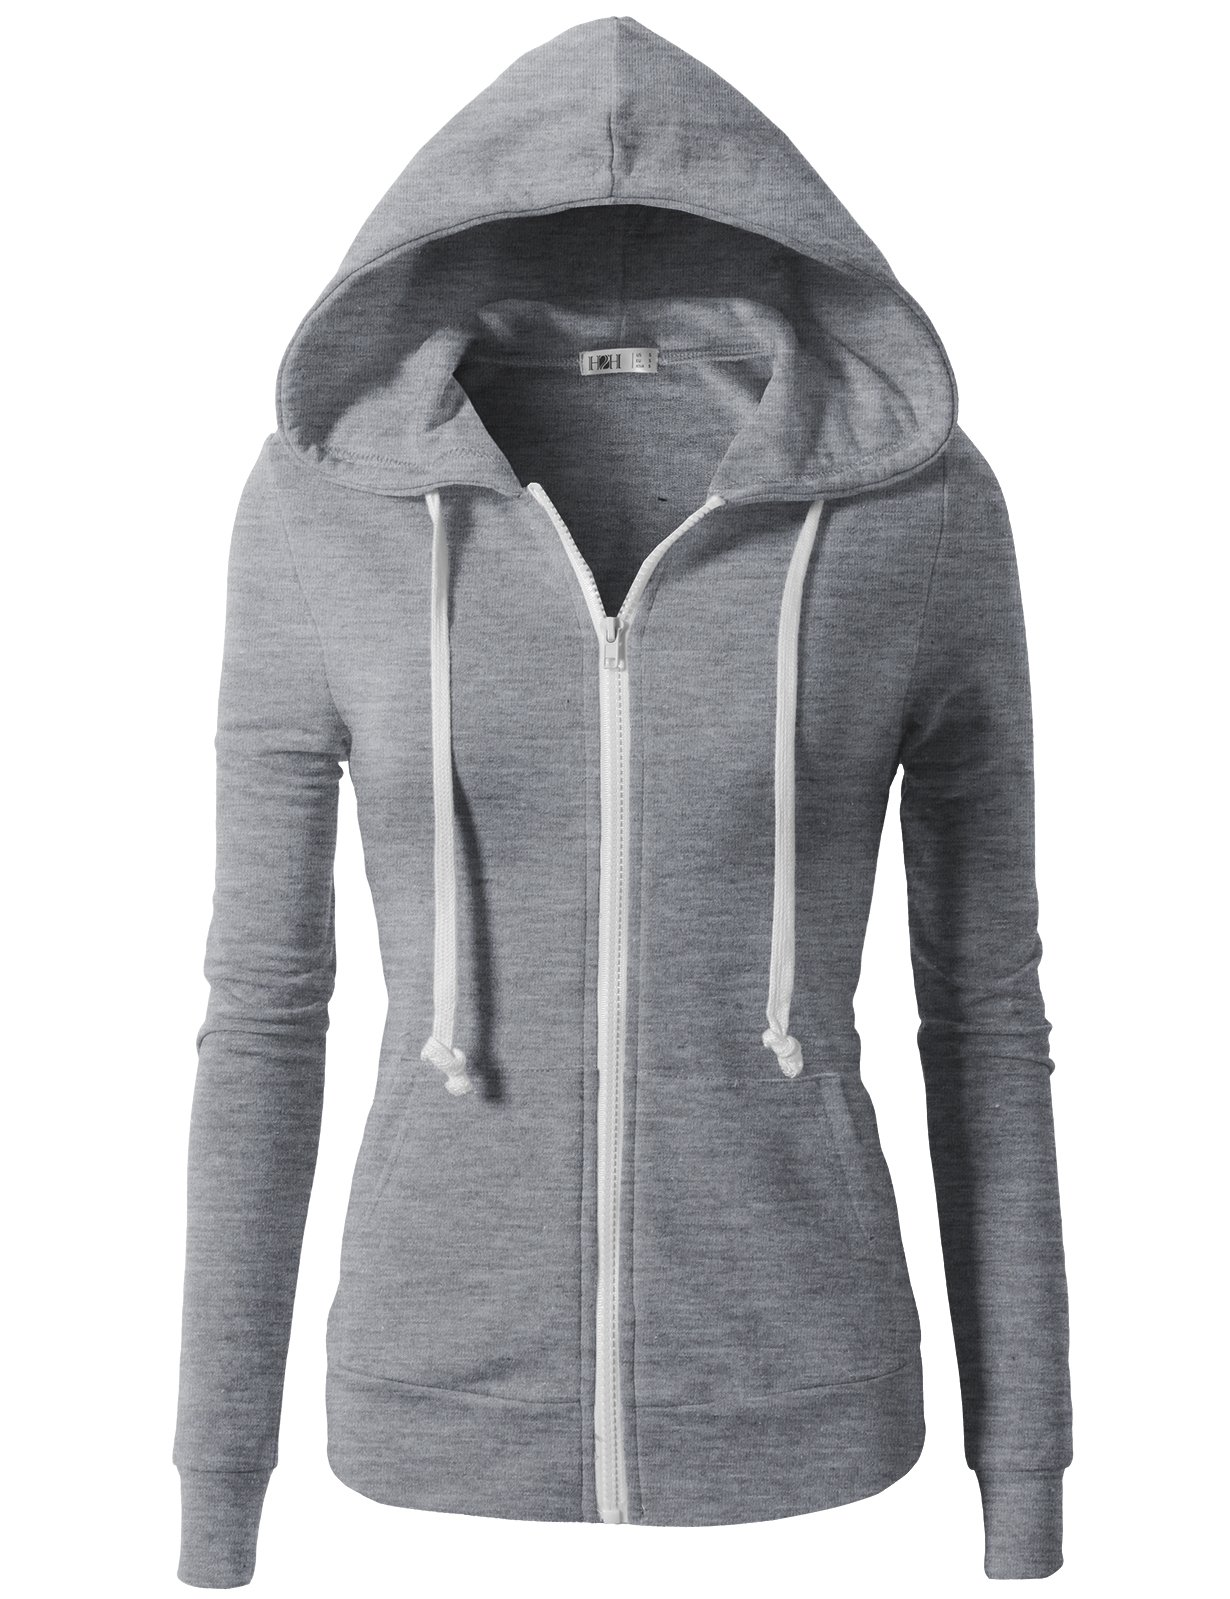 H2H Womens Soft Regular Fit Zip up Long Sleeve Fine Cotton Hoodie Jacket Gray US XS/Asia XS (CWOHOL020) by H2H (Image #1)